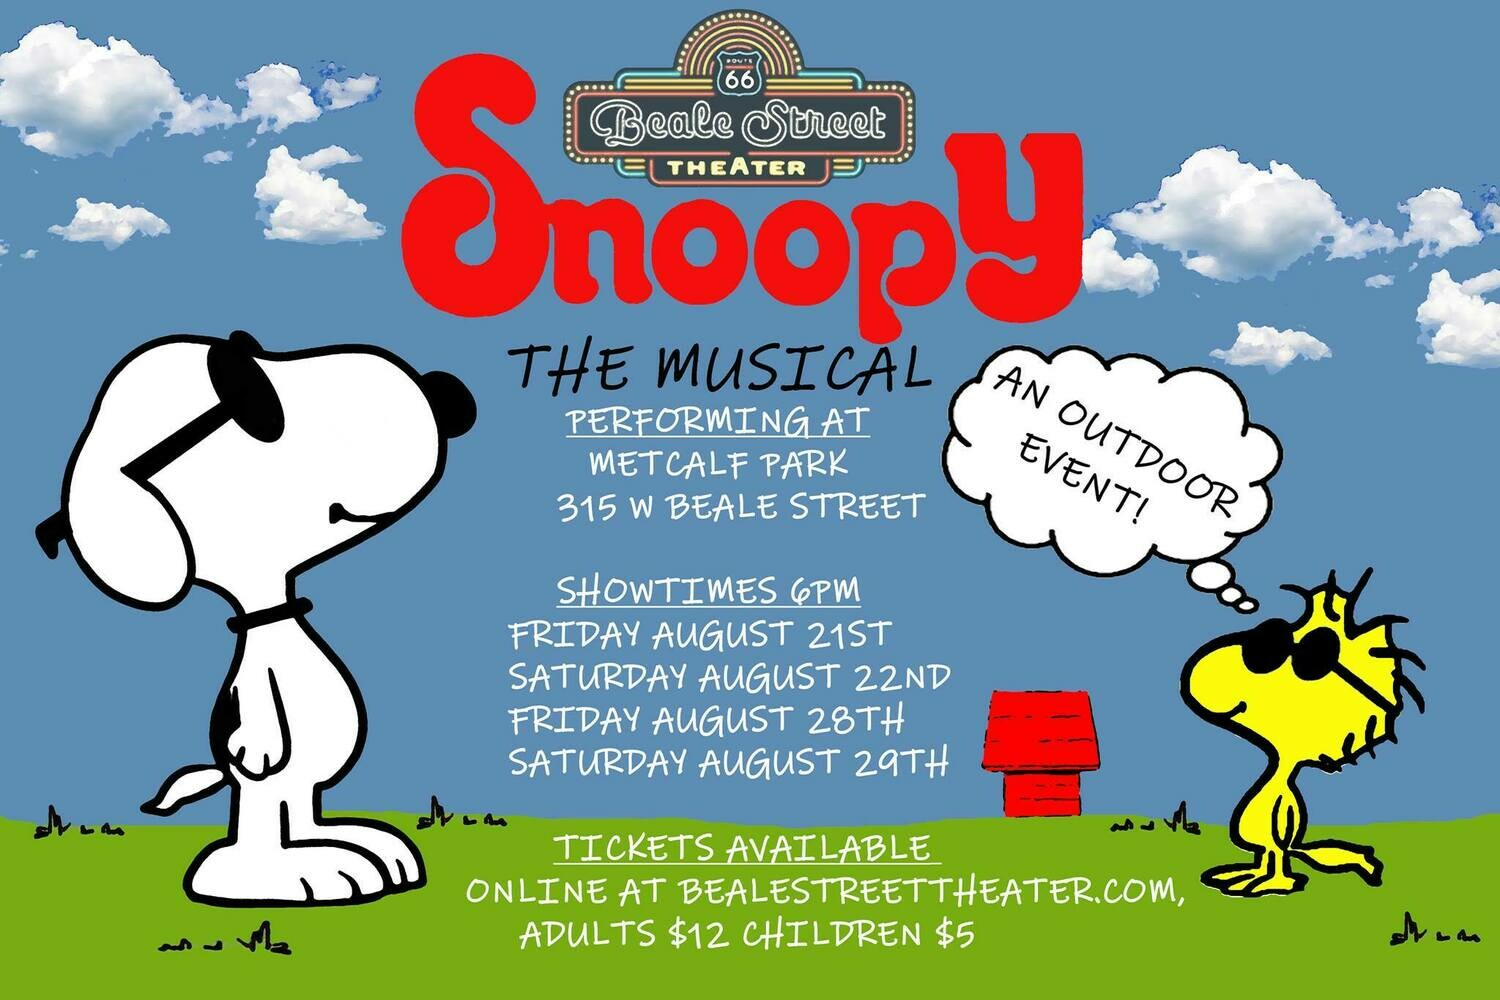 Snoopy August 21st Child Ticket